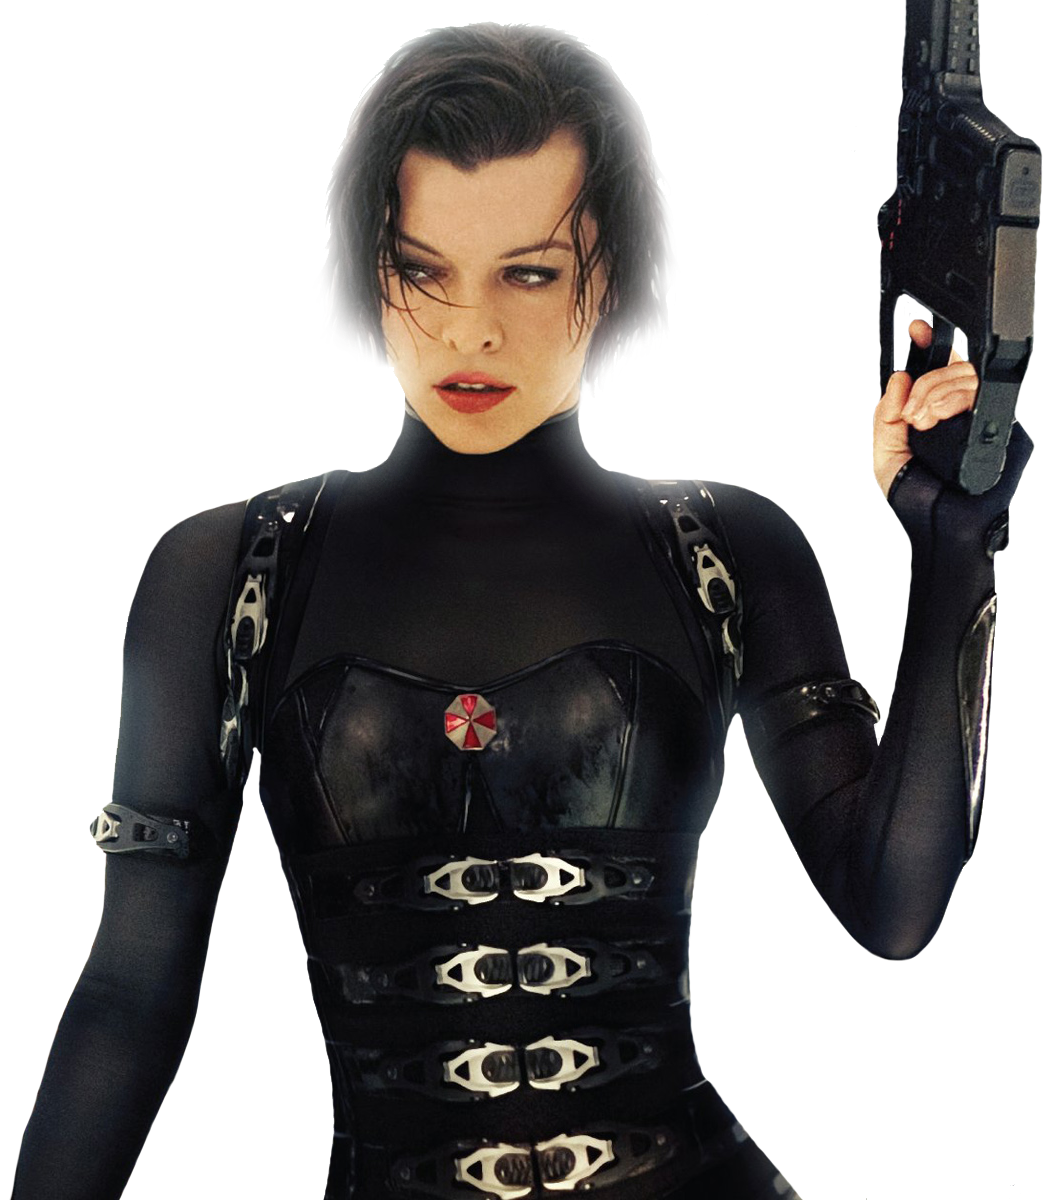 Milla Jovovich Picture PNG Image